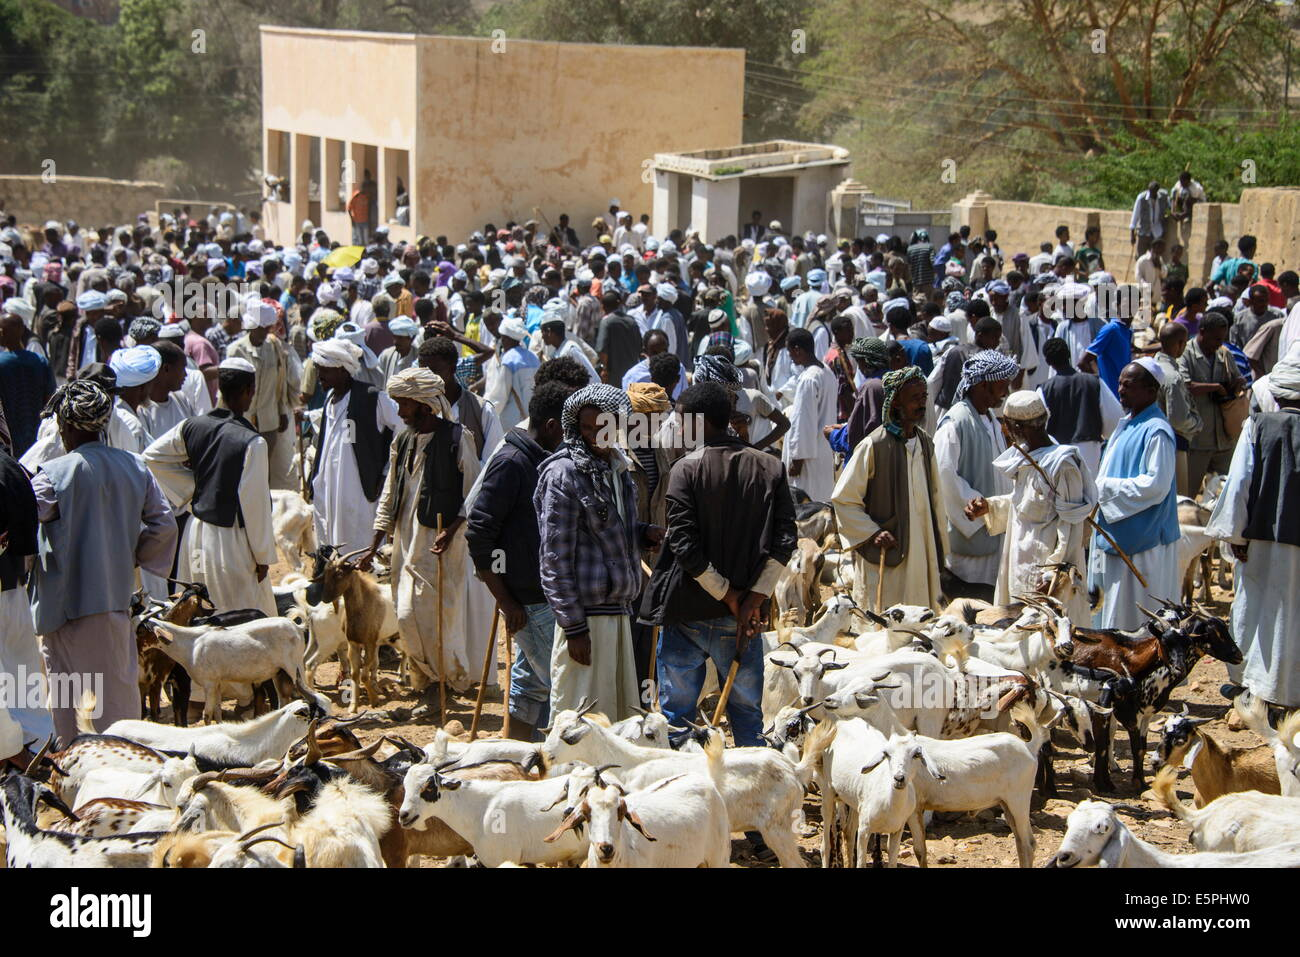 The Monday animal market of Keren, Eritrea, Africa - Stock Image